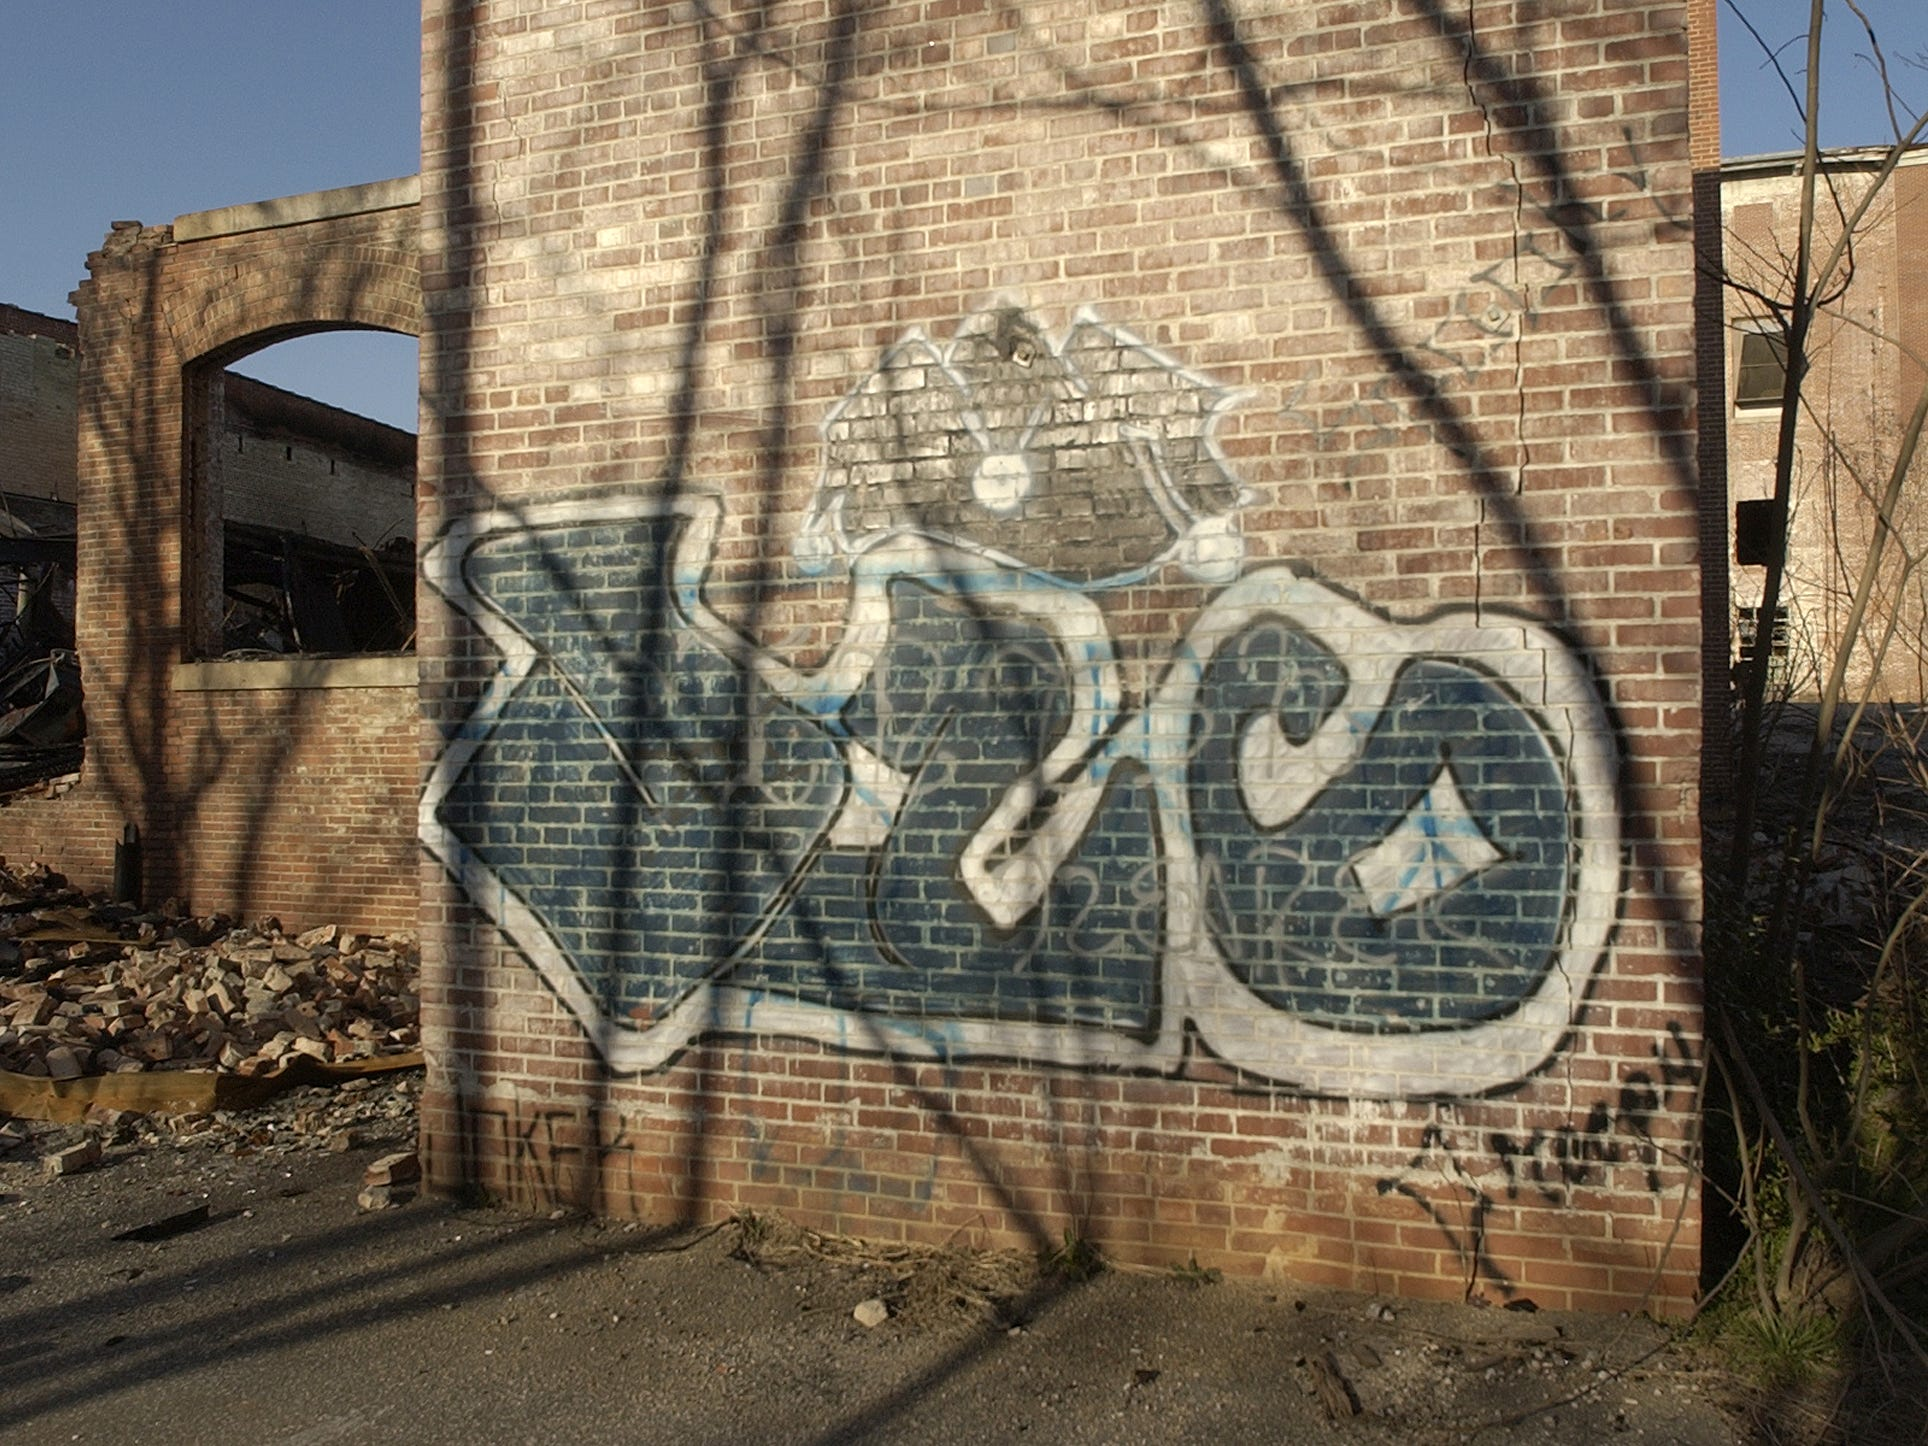 Graffiti at Victor Mill in Greer is pictured in this archive photo from Febuary 2007.